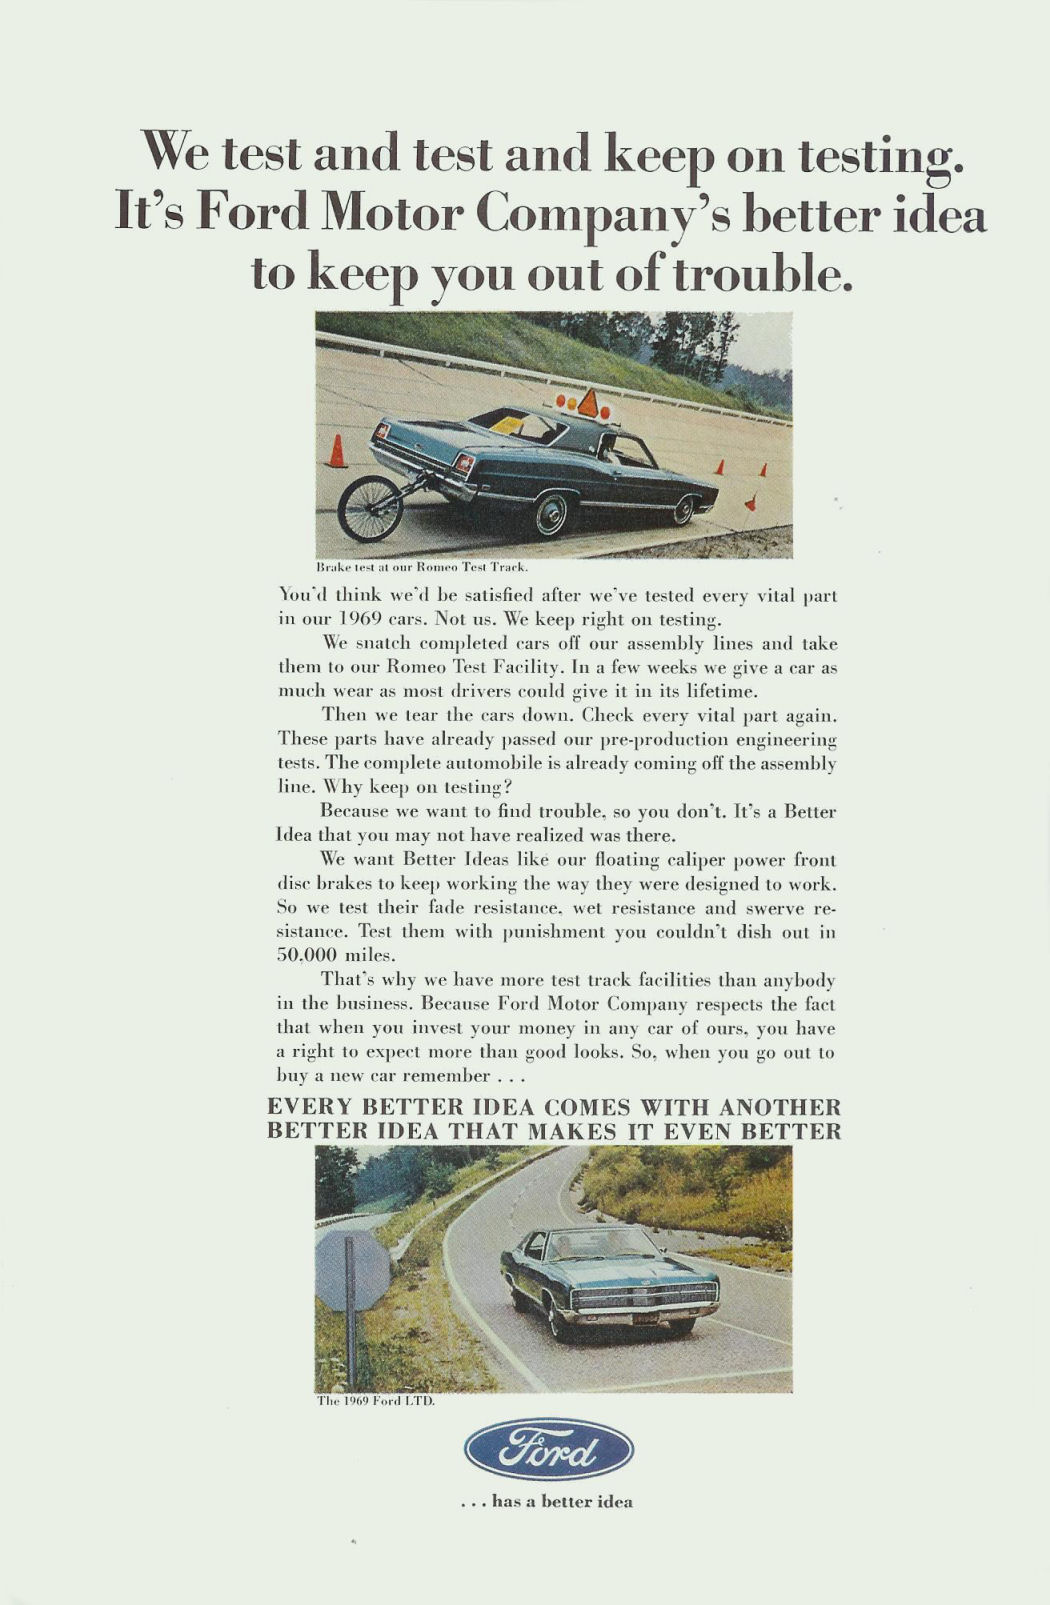 1969 fmc ad 01 for Ford motor company corporate